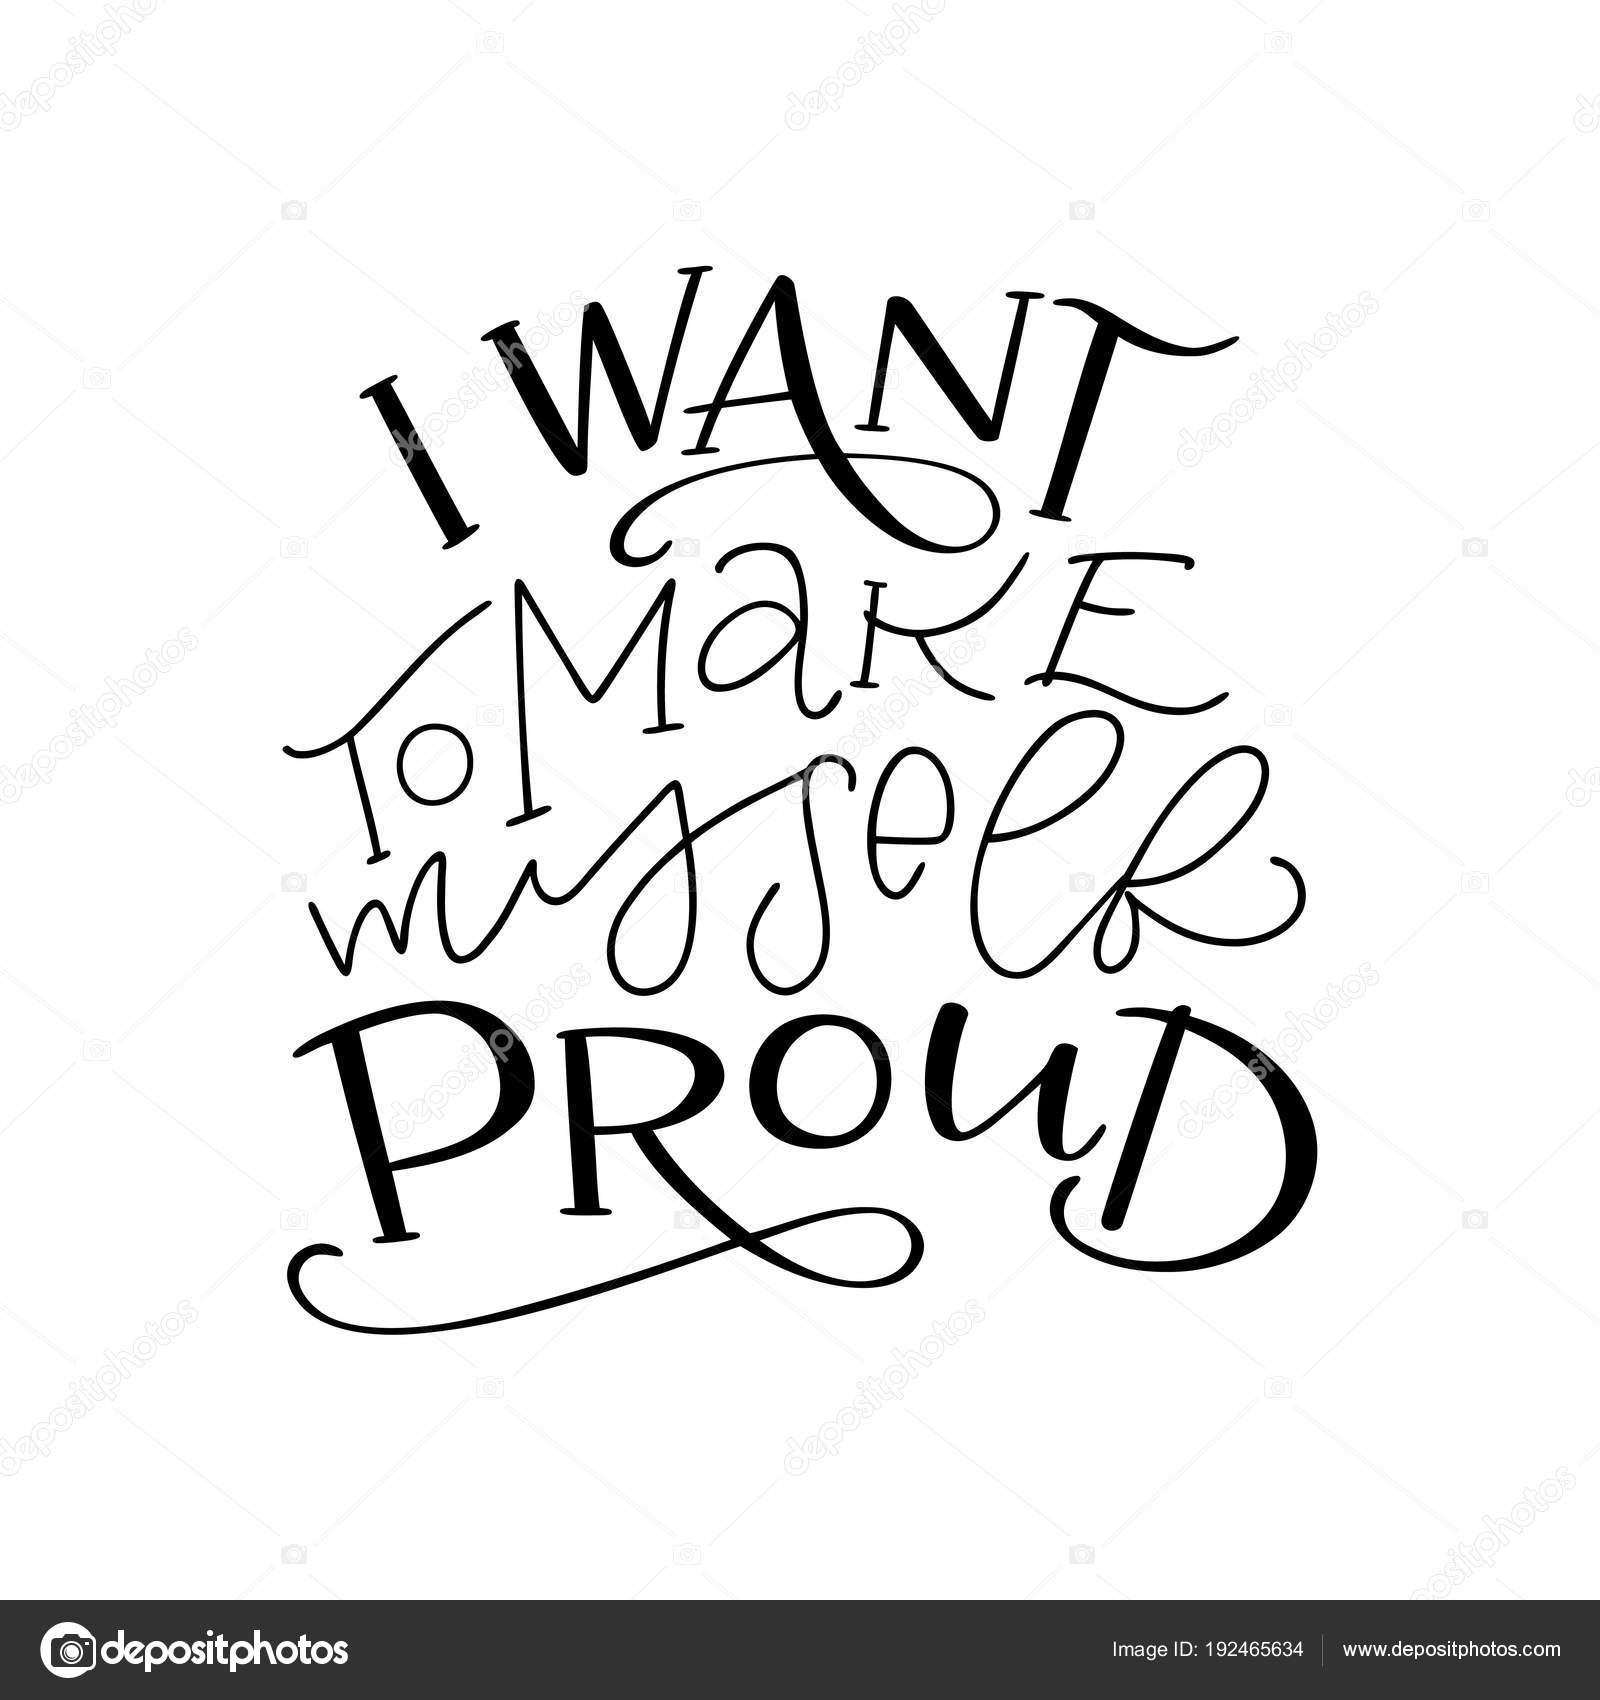 Motivation Typography I Want To Make Myself Proud. Hand Drawn Quote  Isolated On White Background. Unique Design Element For Poster, Greeting  Cards And Print ...